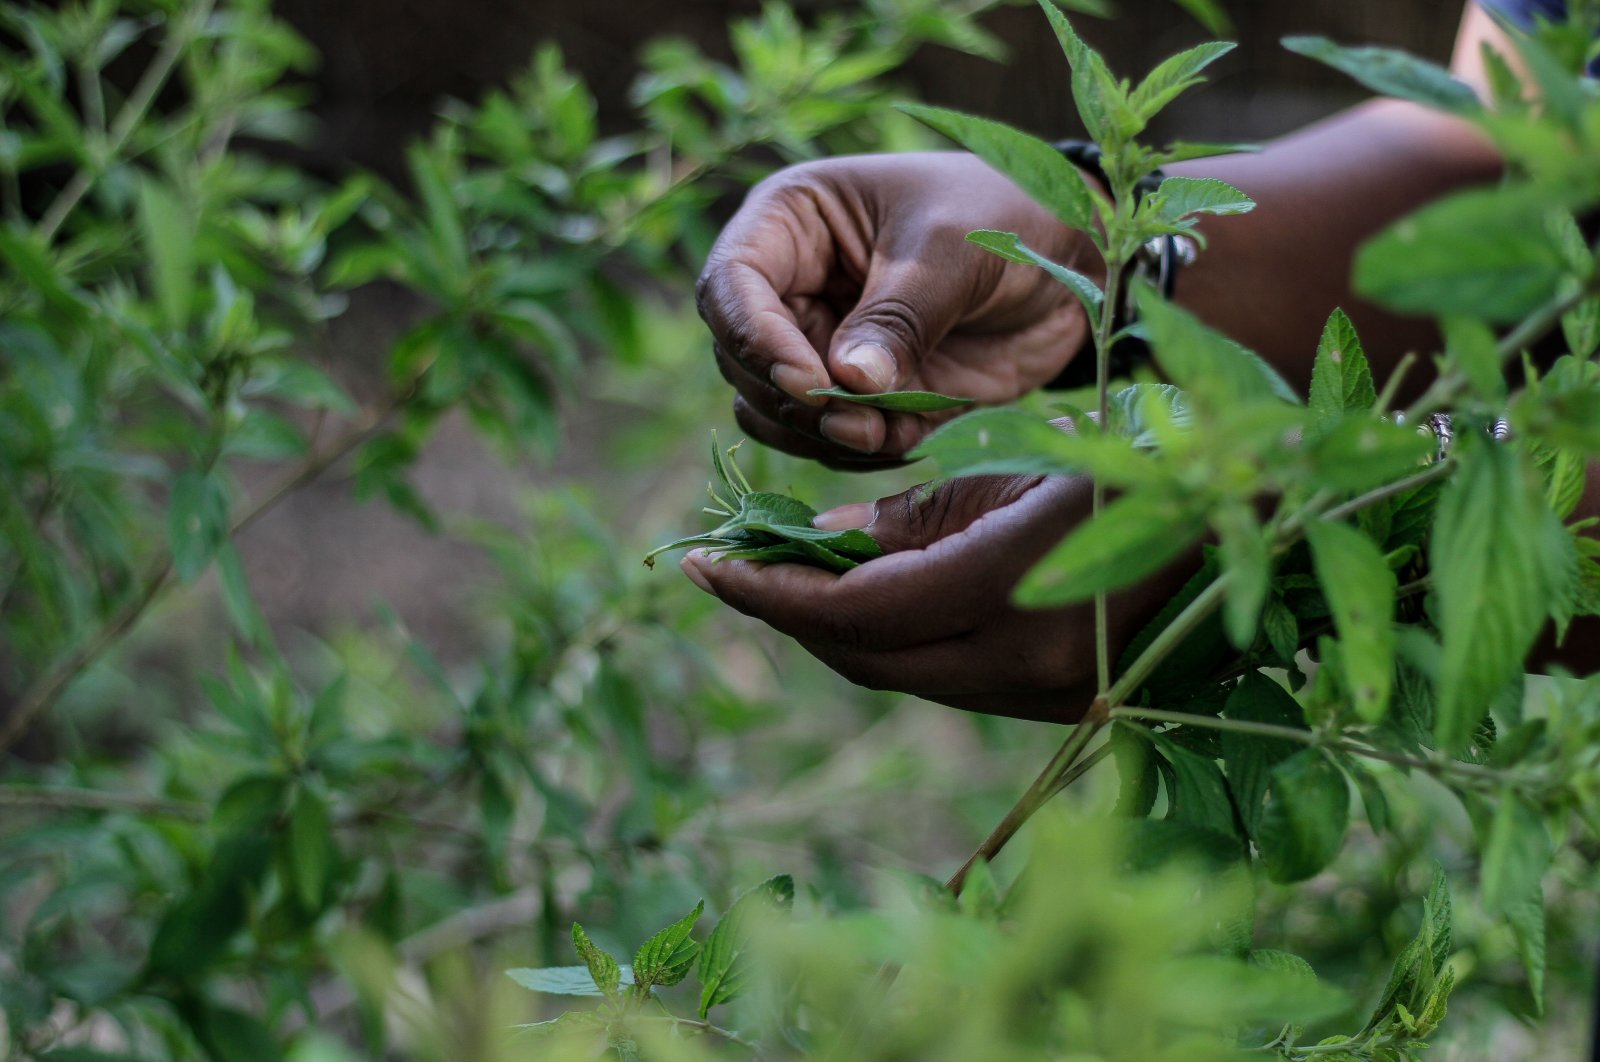 Zumbani plant is seen being picked in a garden in Zimbabwe's Harare on Feb. 17, 2021 (AA Photo)